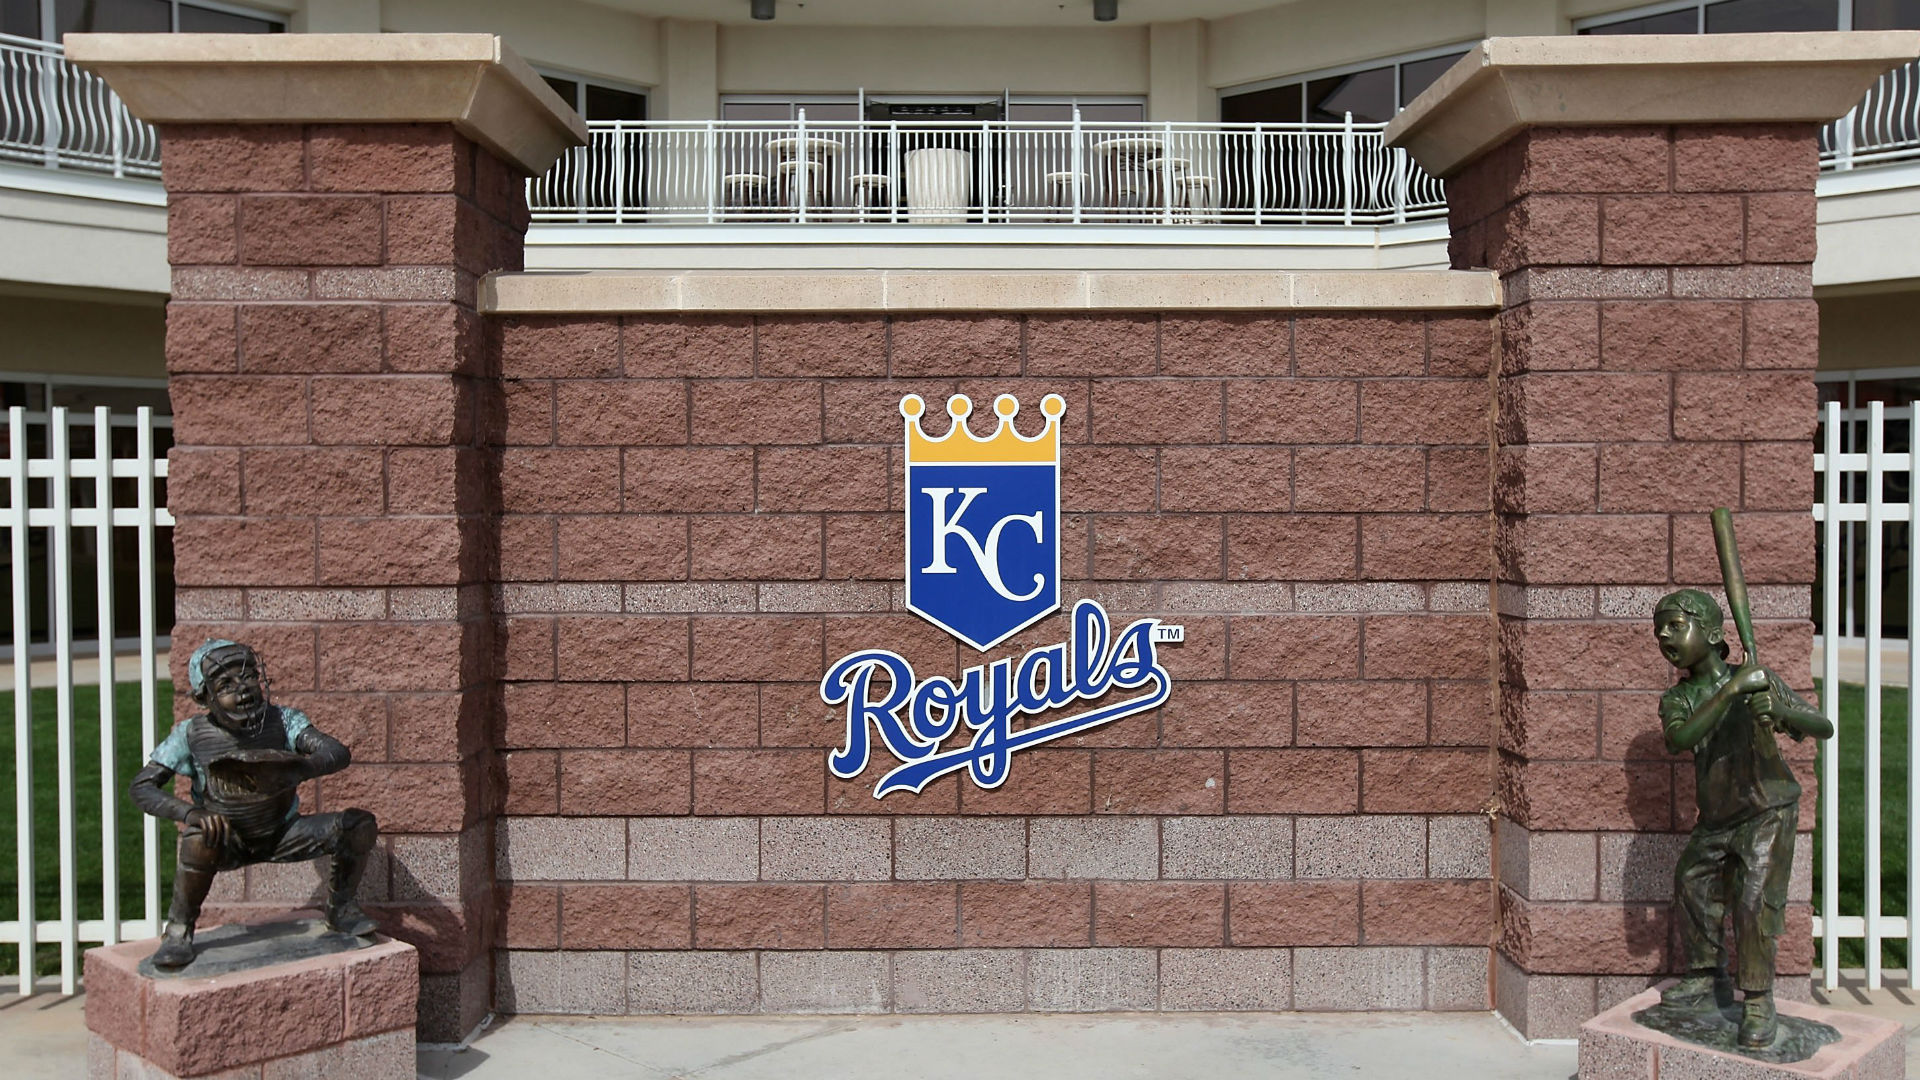 How Reggie Sanders influenced the Royals to sign a player with autism